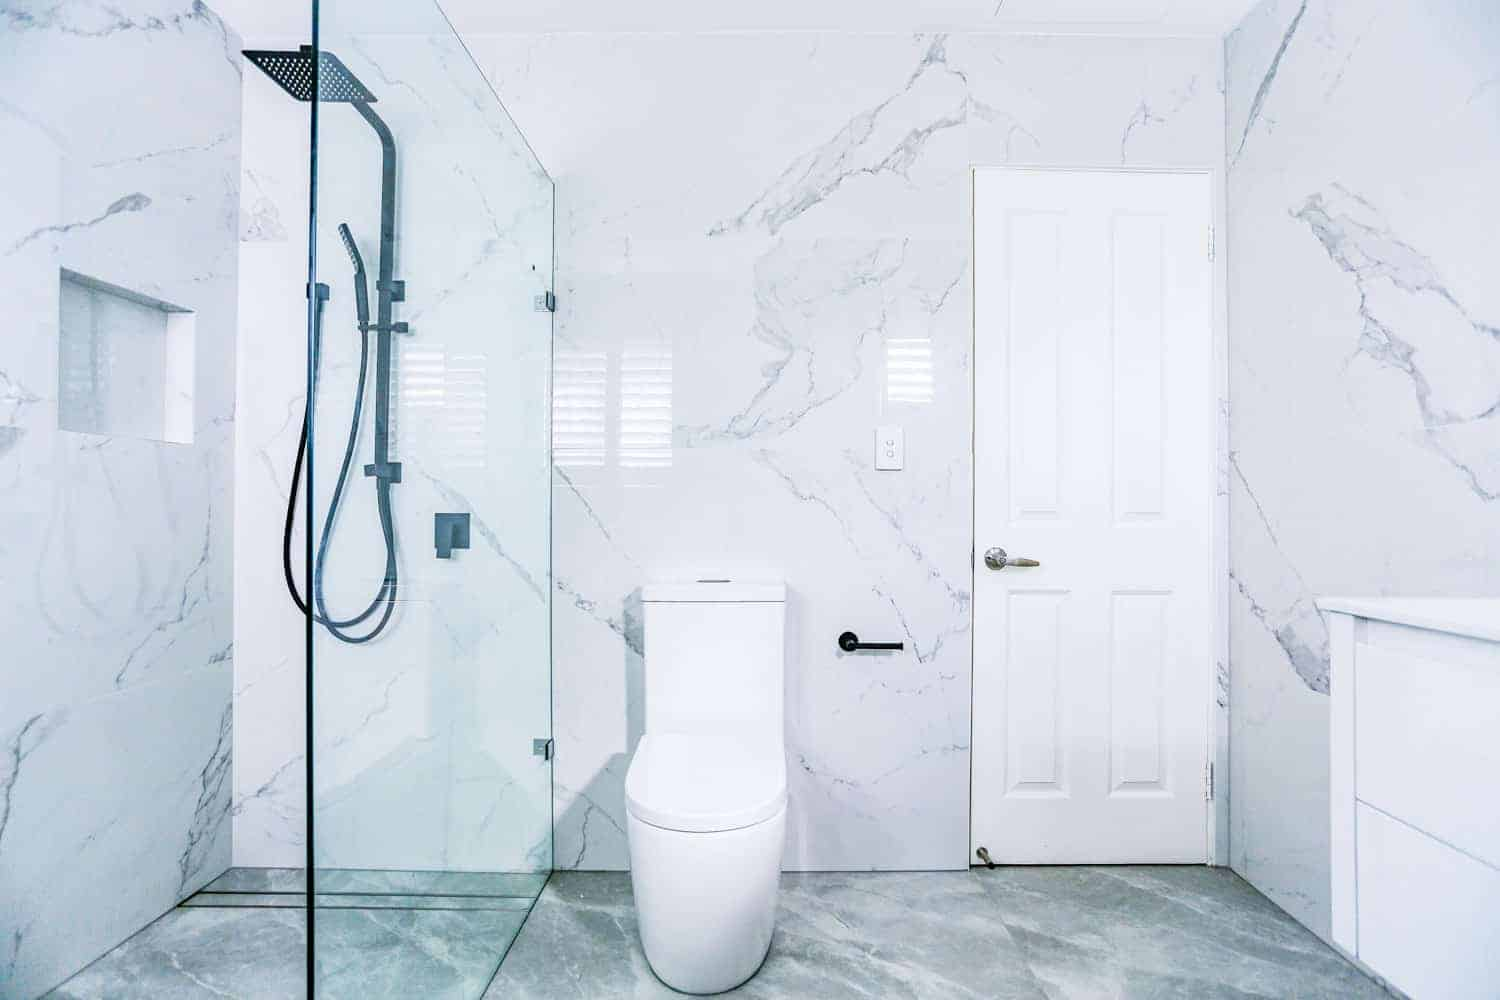 Nu-Trend-Sydney-Bathroom-Renovation-with-KDK-023-back-endtry-china-cistern-toilet